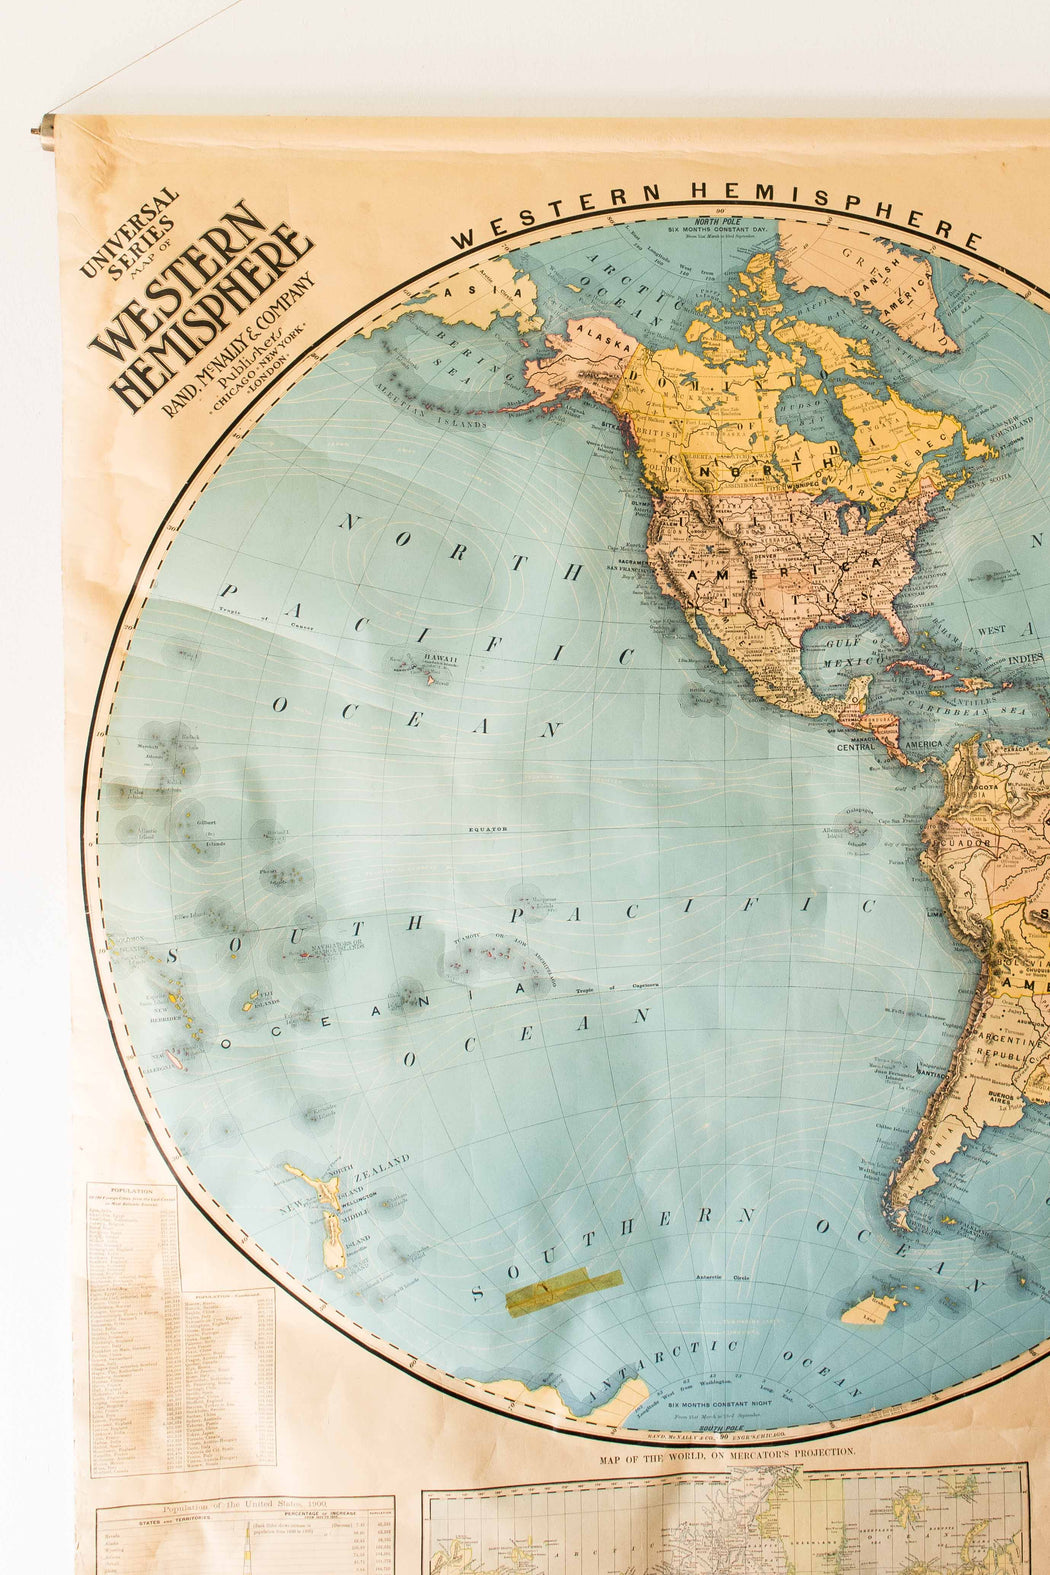 Antique Rand McNally & Co. Western Hemisphere Map